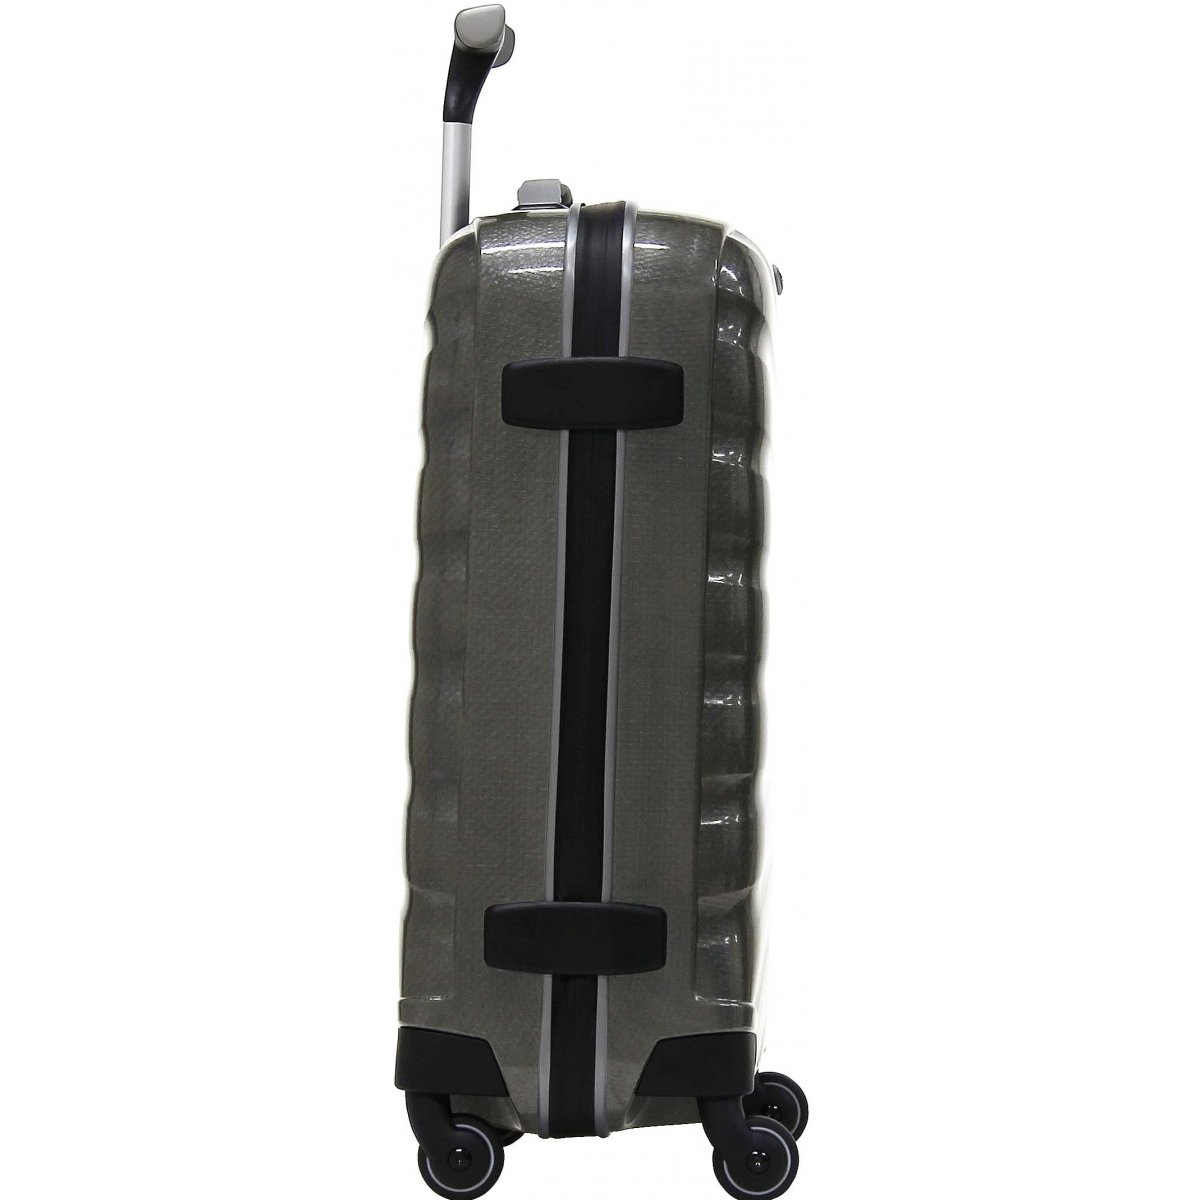 valise cabine samsonite firelite spinner 55 cm firelite74 couleur principale gris eclipse. Black Bedroom Furniture Sets. Home Design Ideas